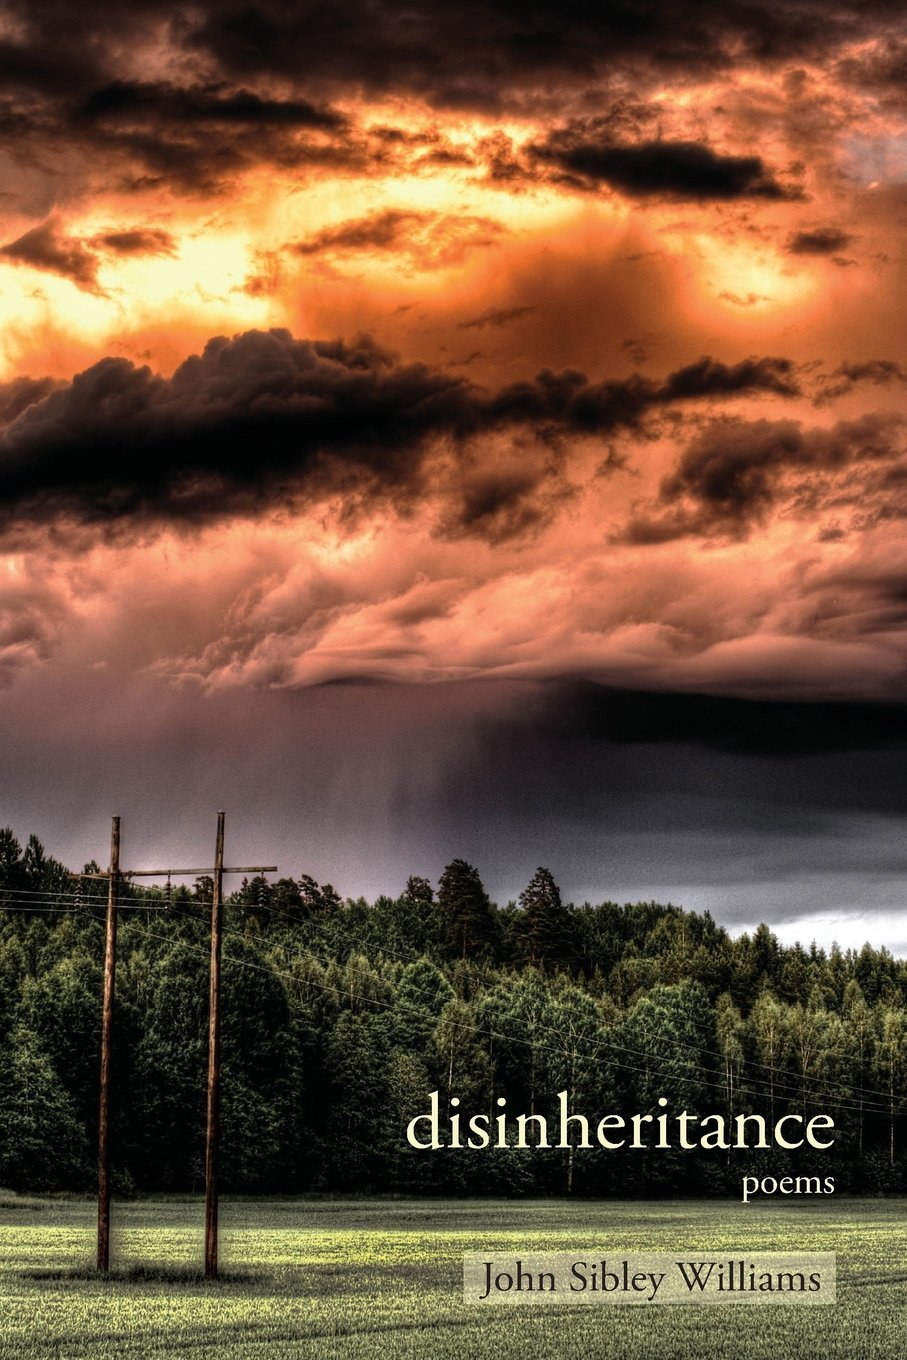 Disinheritance by John Sibley Williams